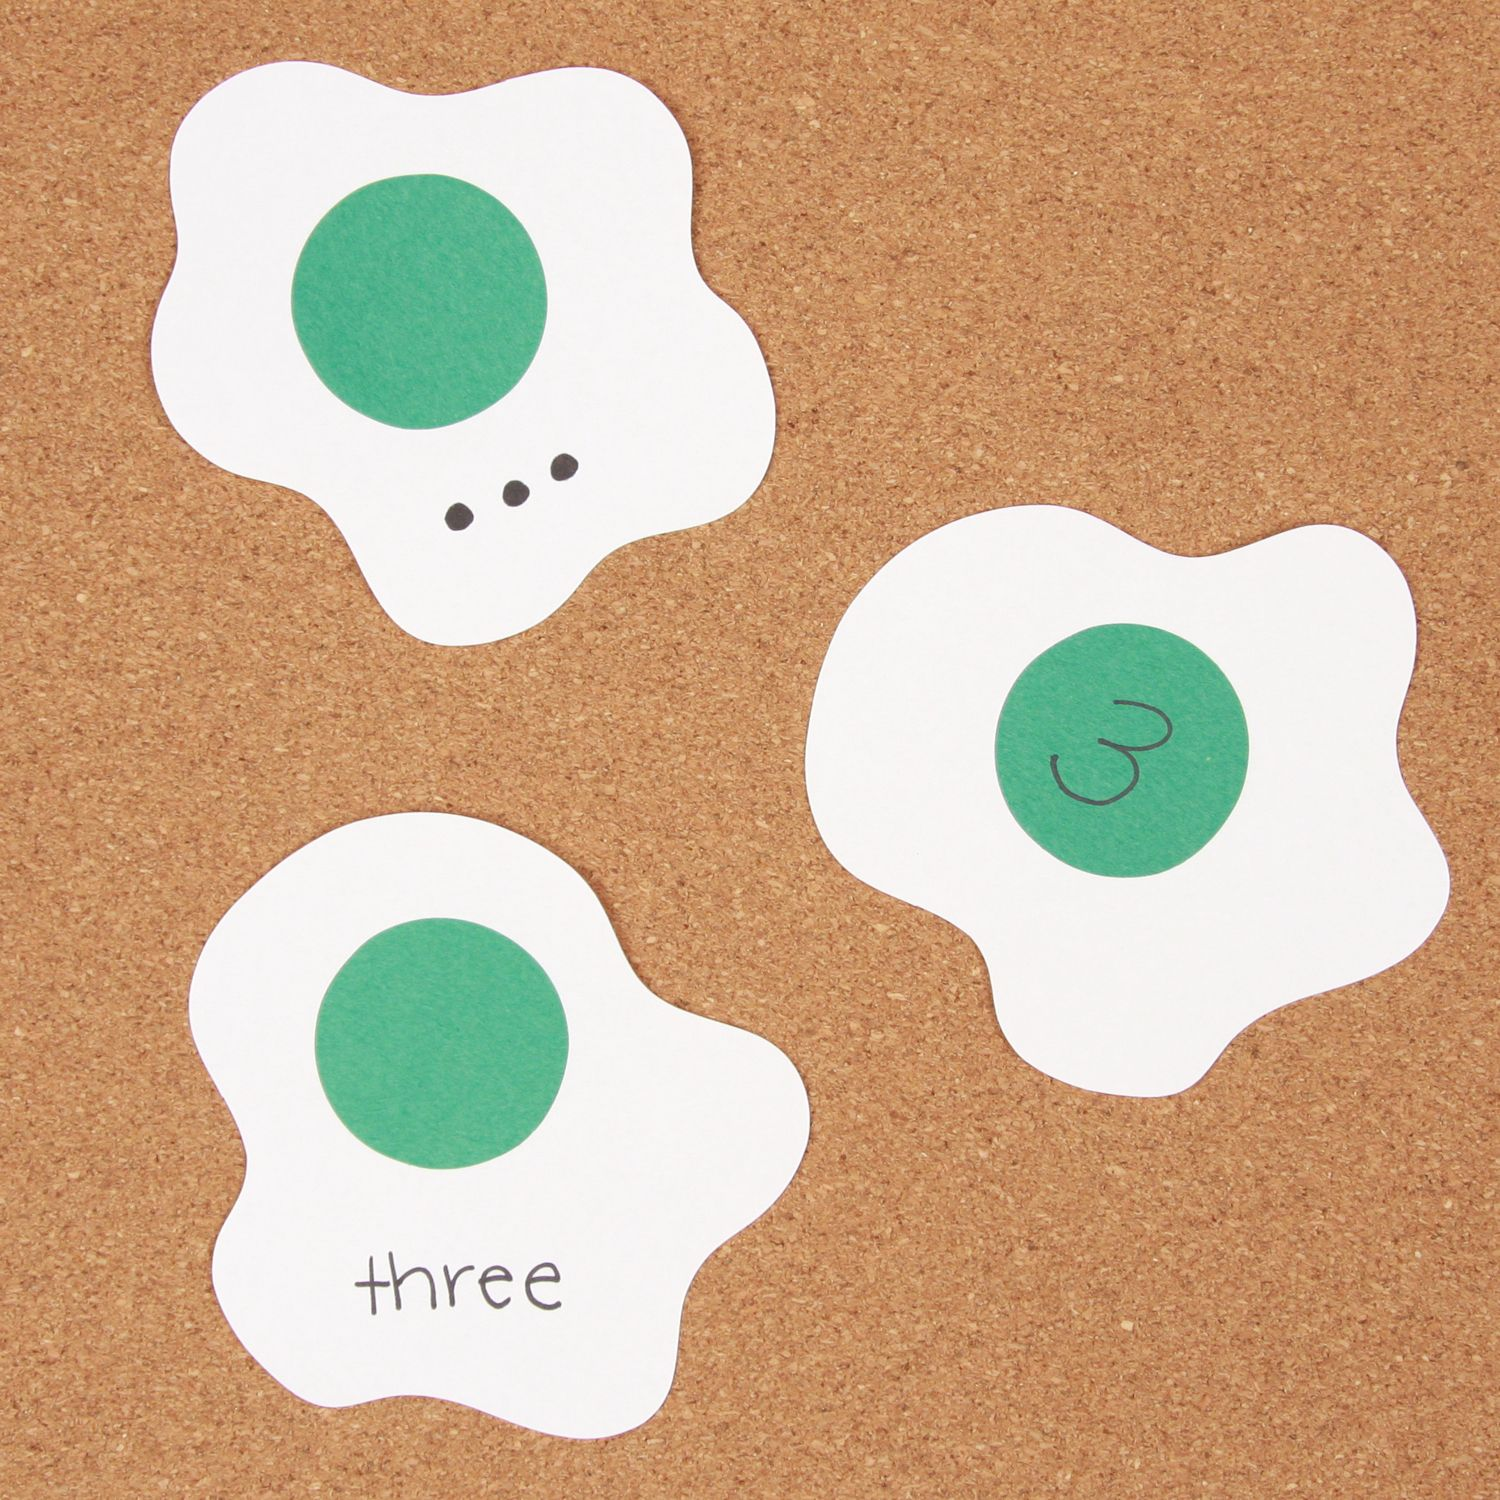 Number Matching Game With Green Eggs Using The Ham Die From AccuCut